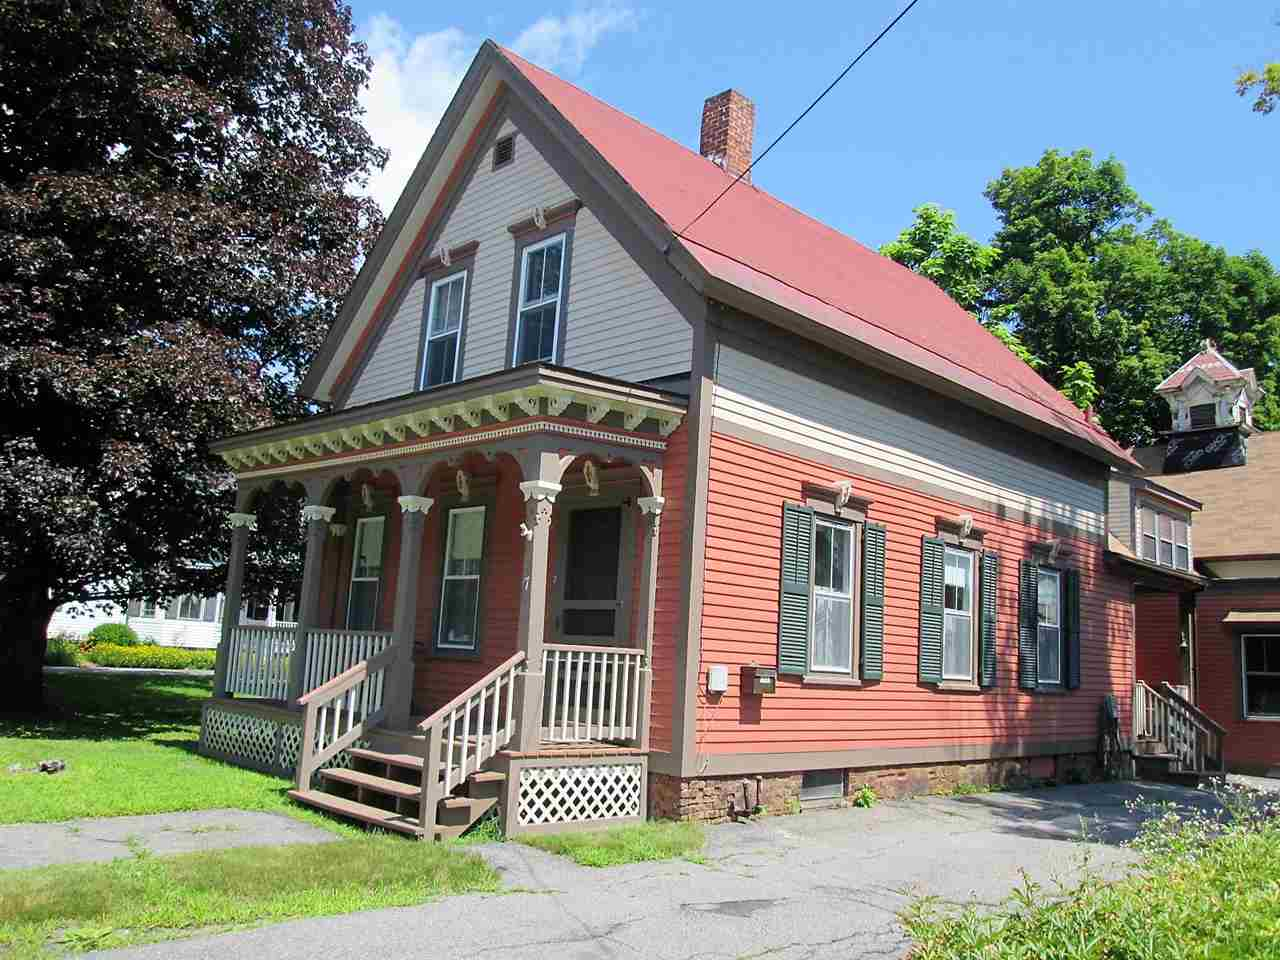 VILLAGE OF BELLOWS FALLS IN TOWN OF ROCKINGHAM VT Home for sale $$120,000 | $88 per sq.ft.